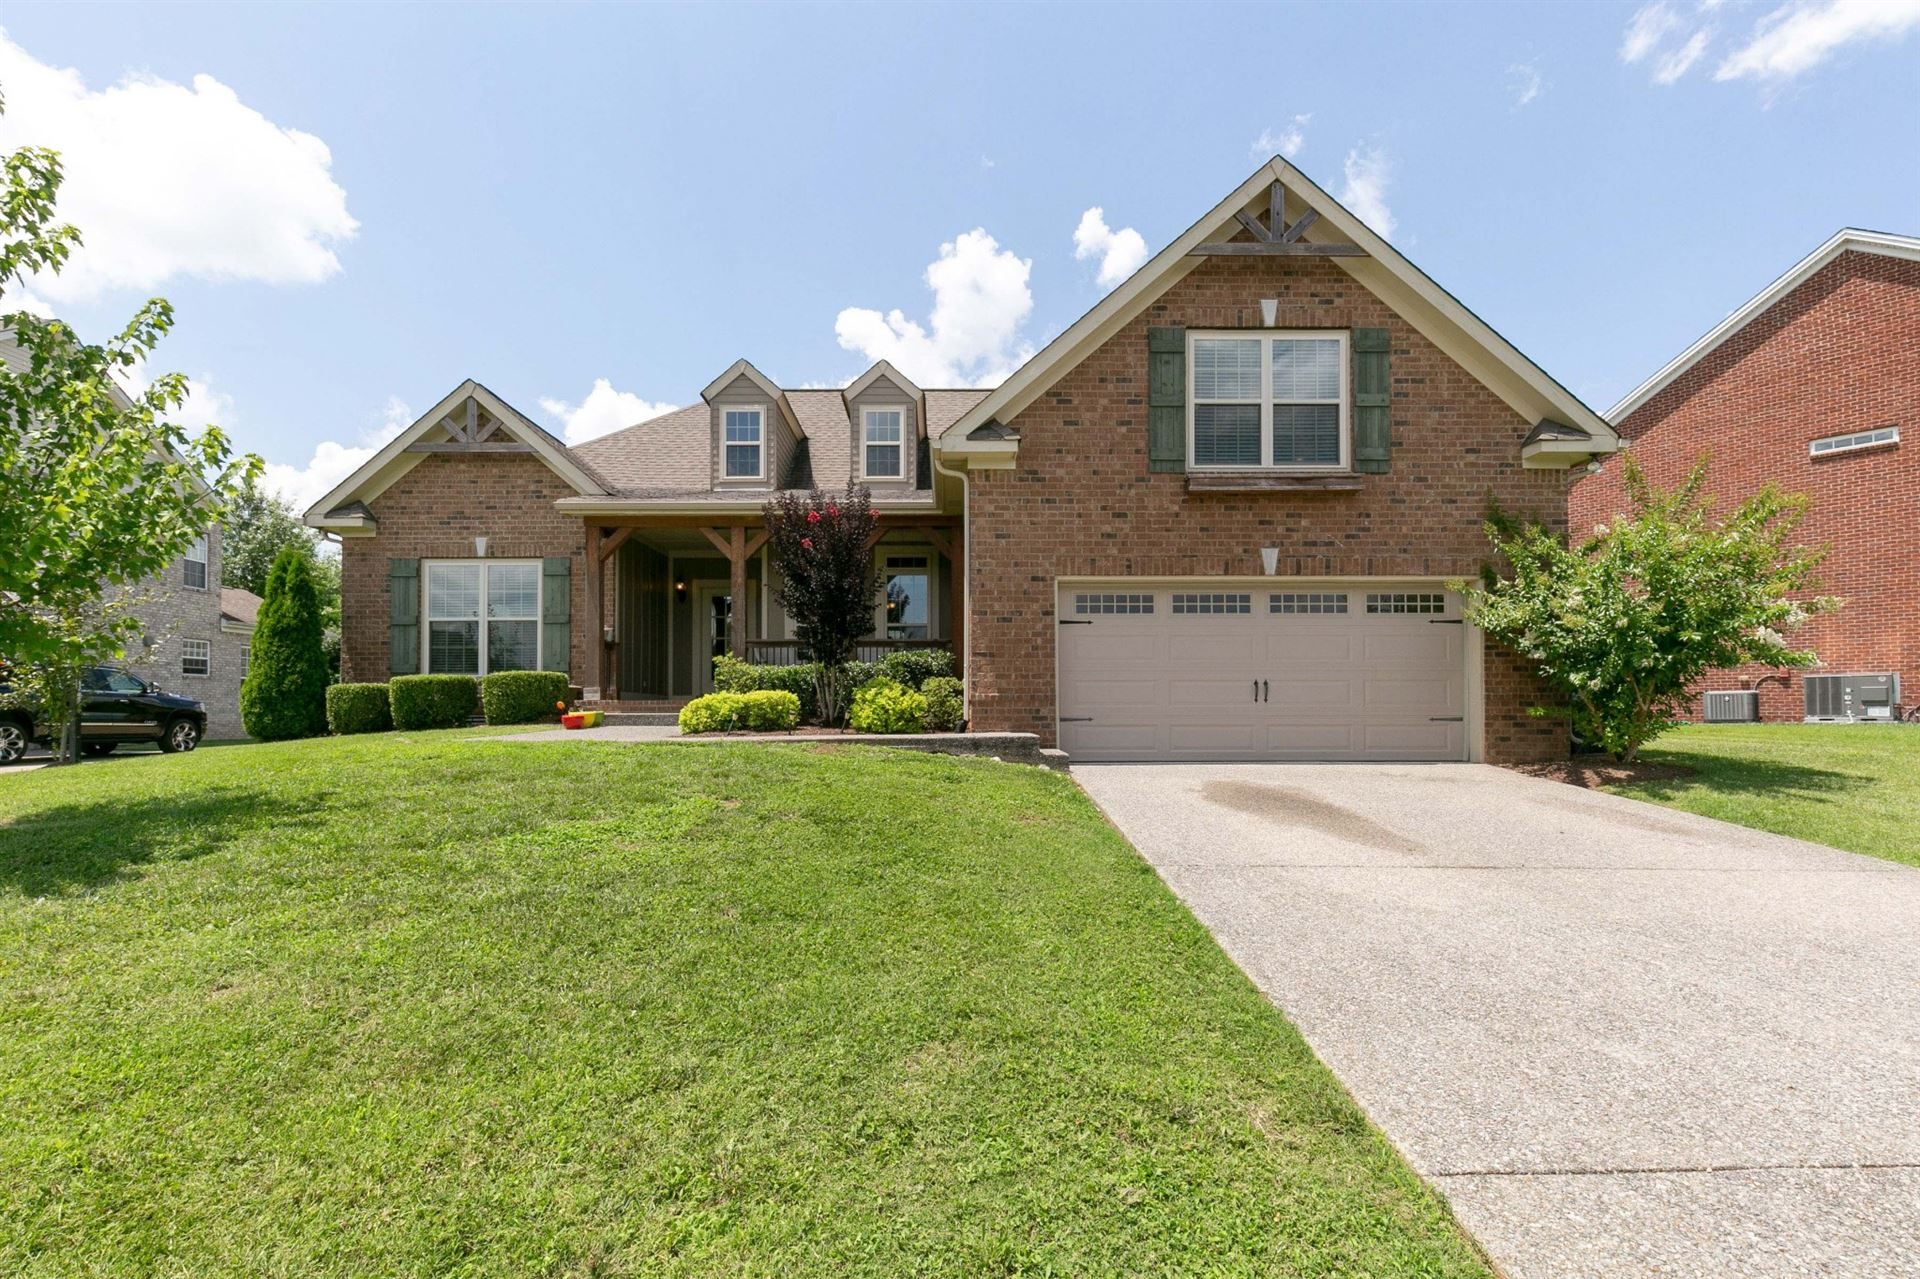 Photo of 1028 Queen's Place, Spring Hill, TN 37174 (MLS # 2272916)